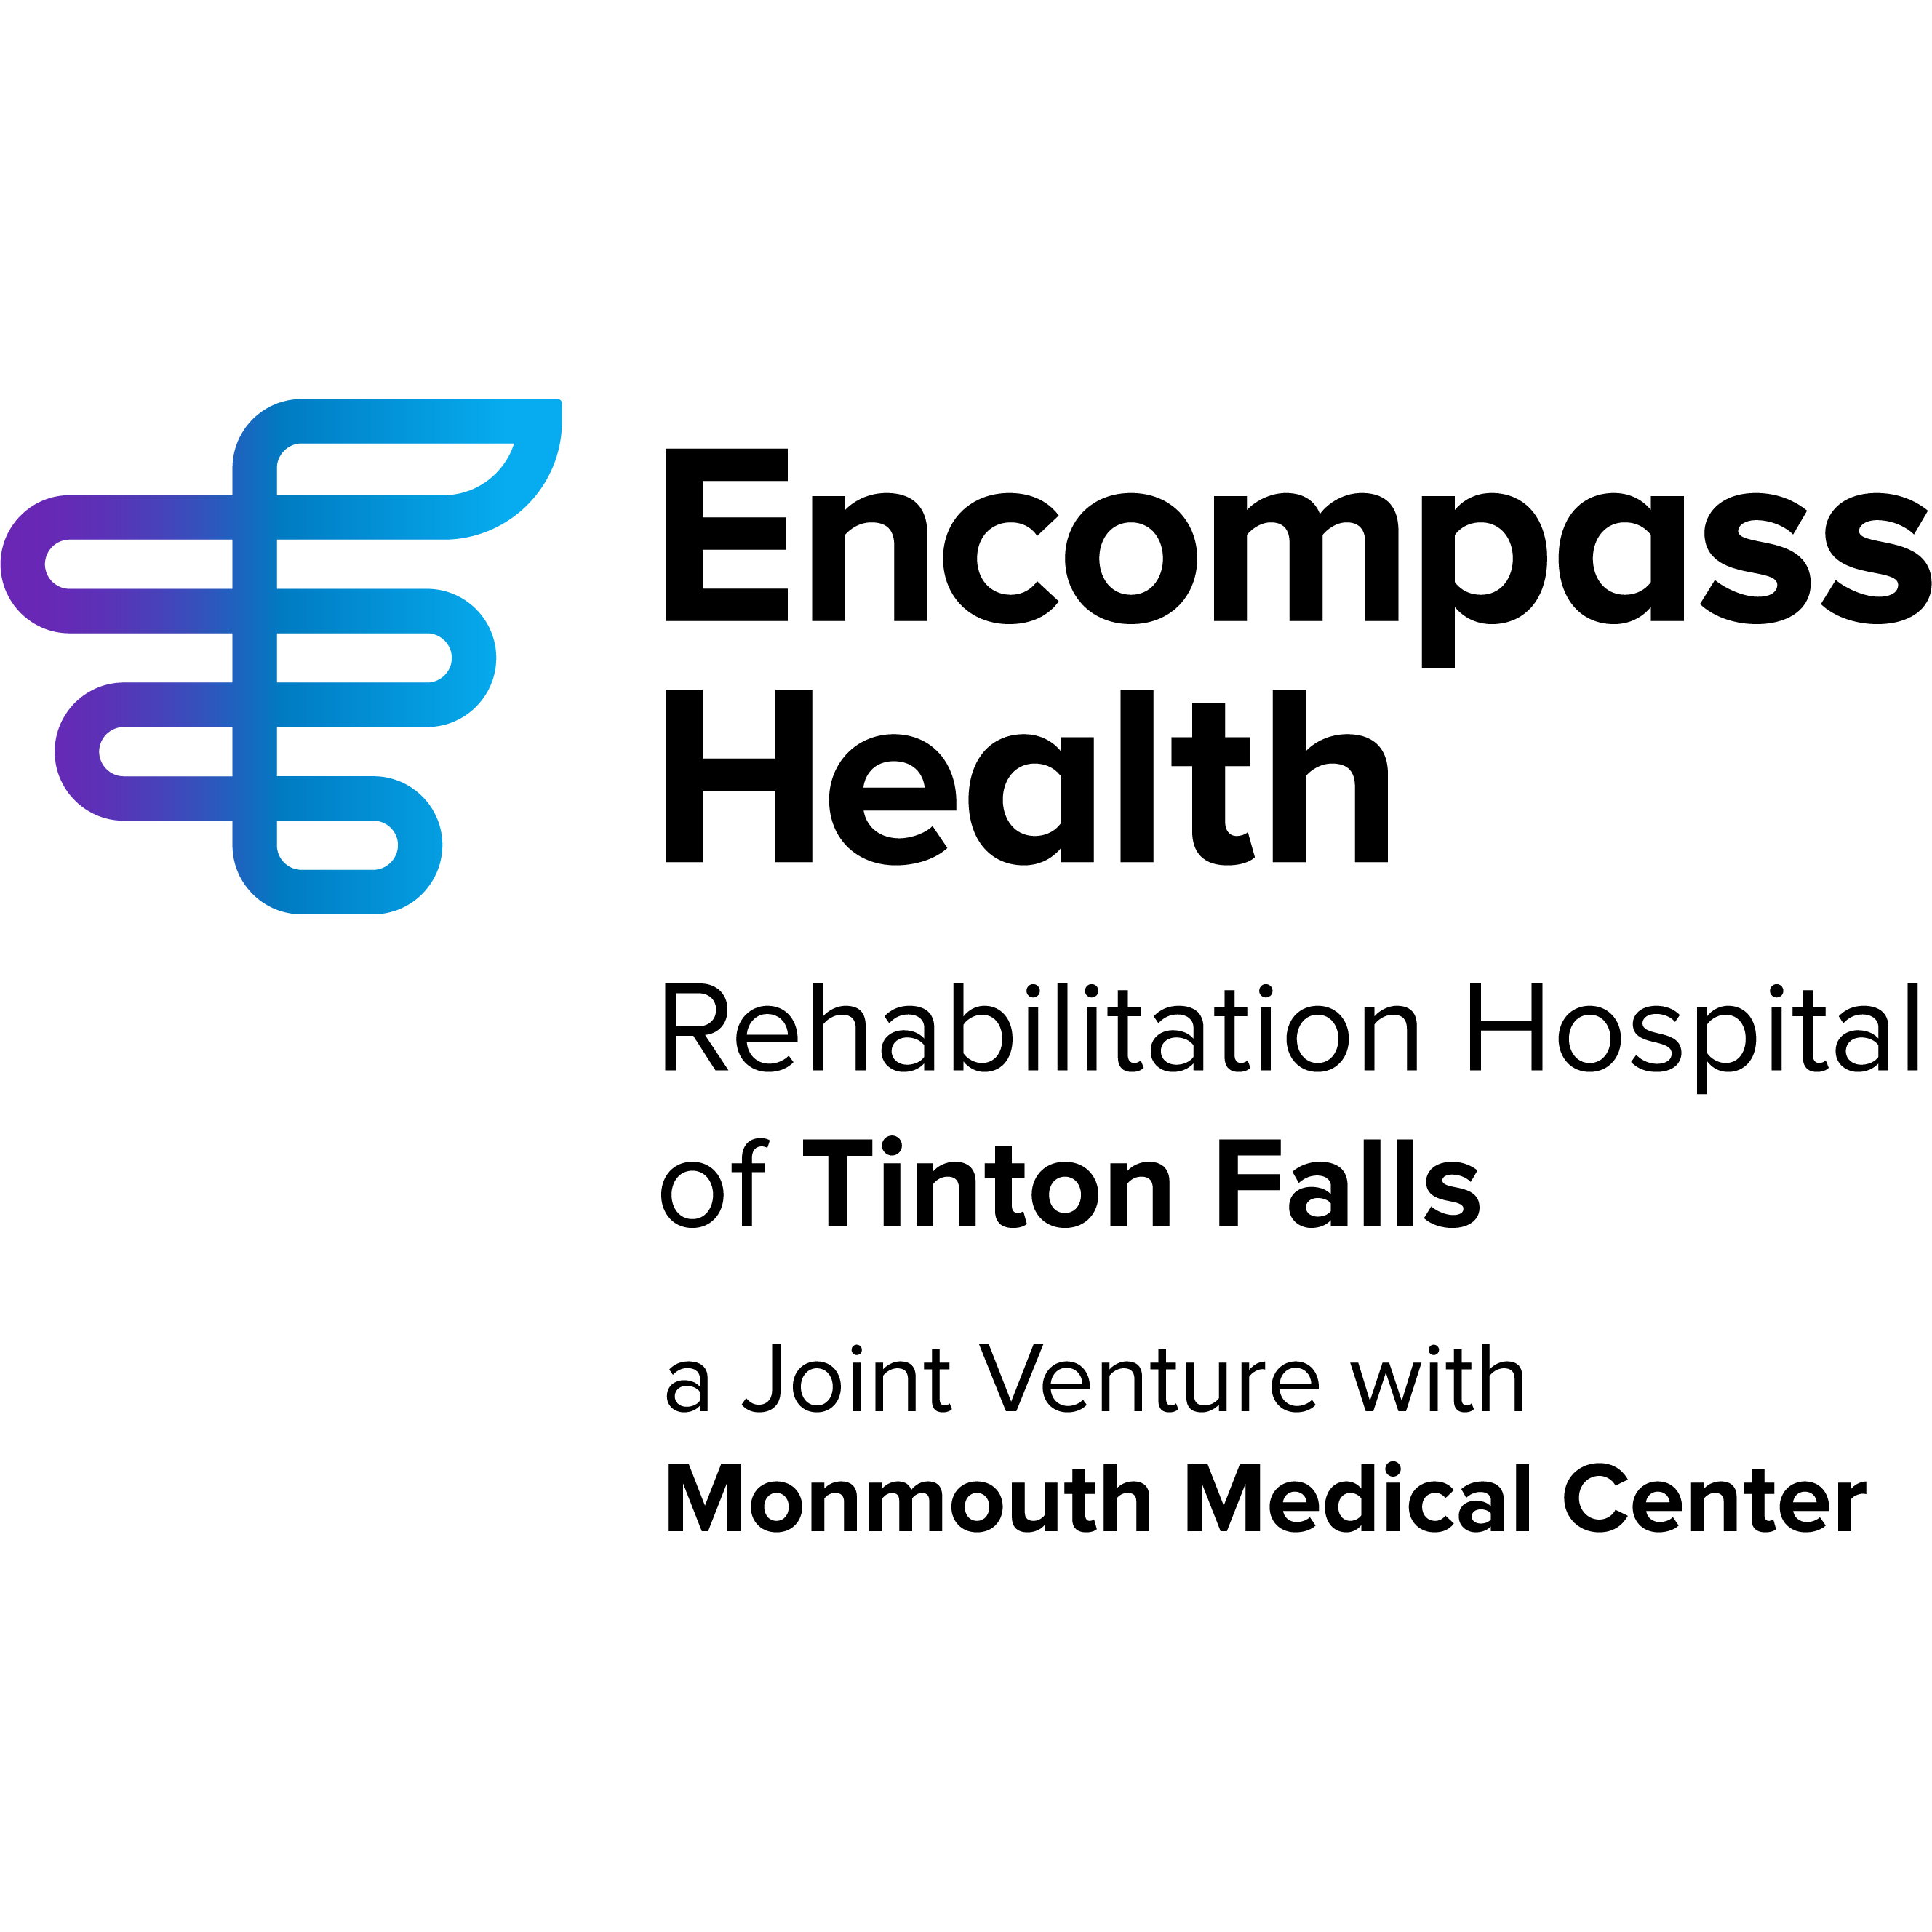 Encompass Health Rehabilitation Hospital of Tinton Falls image 1